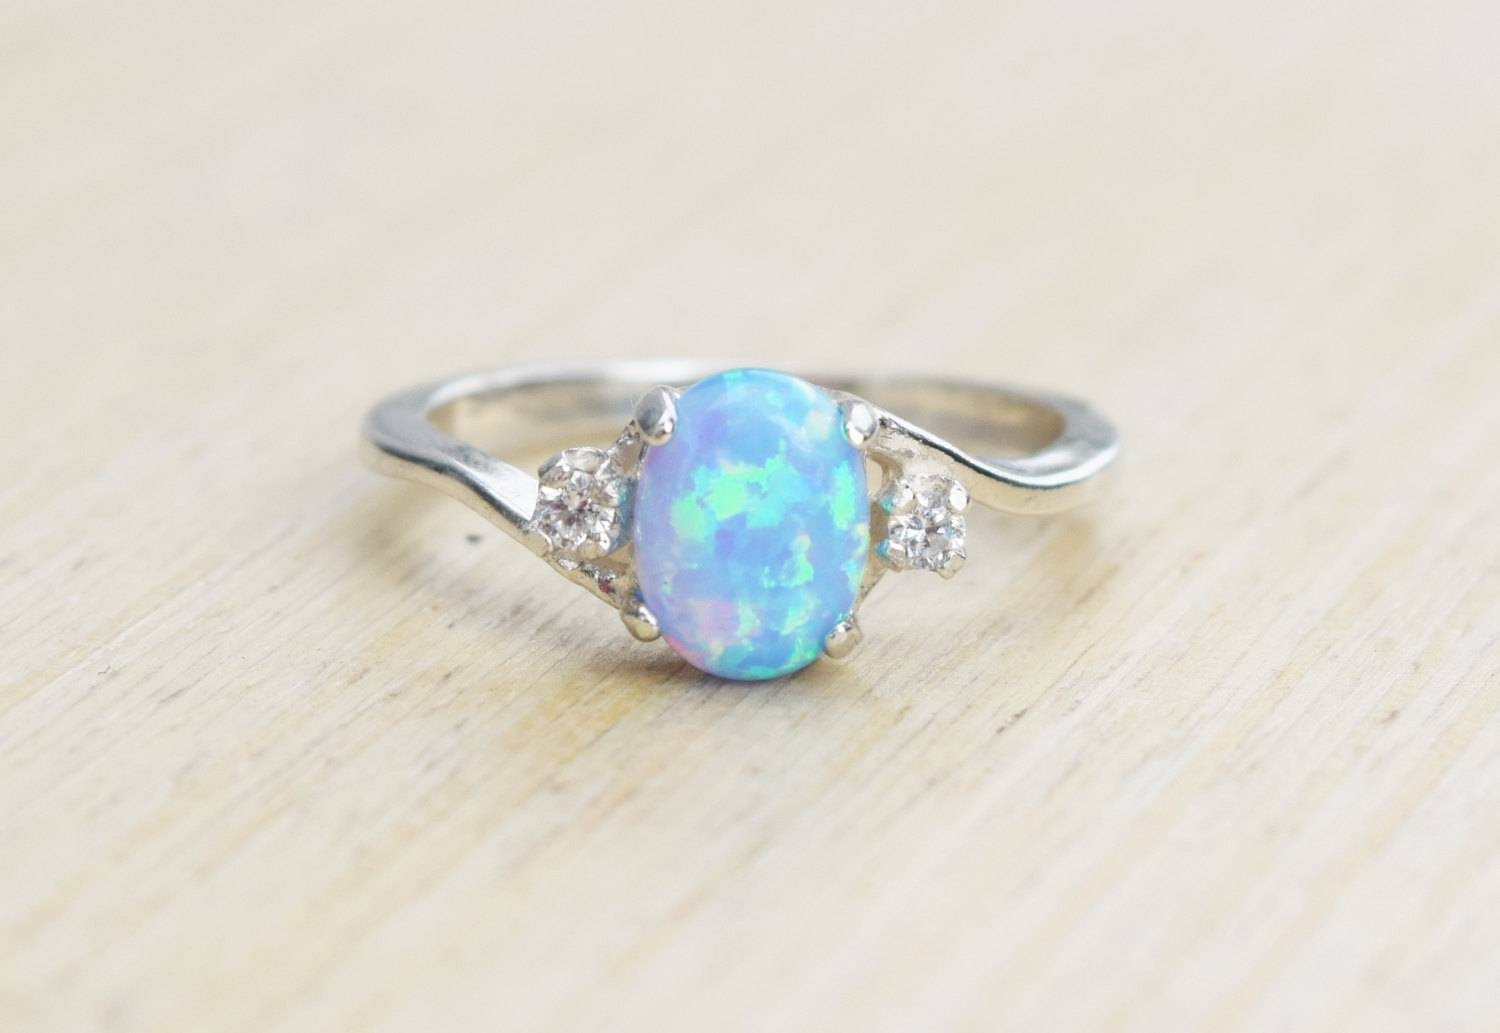 Silver Lab Opal Ring Blue Opal Ring Light Blue Opal Ring Pertaining To October Birthstone Engagement Rings (View 7 of 15)